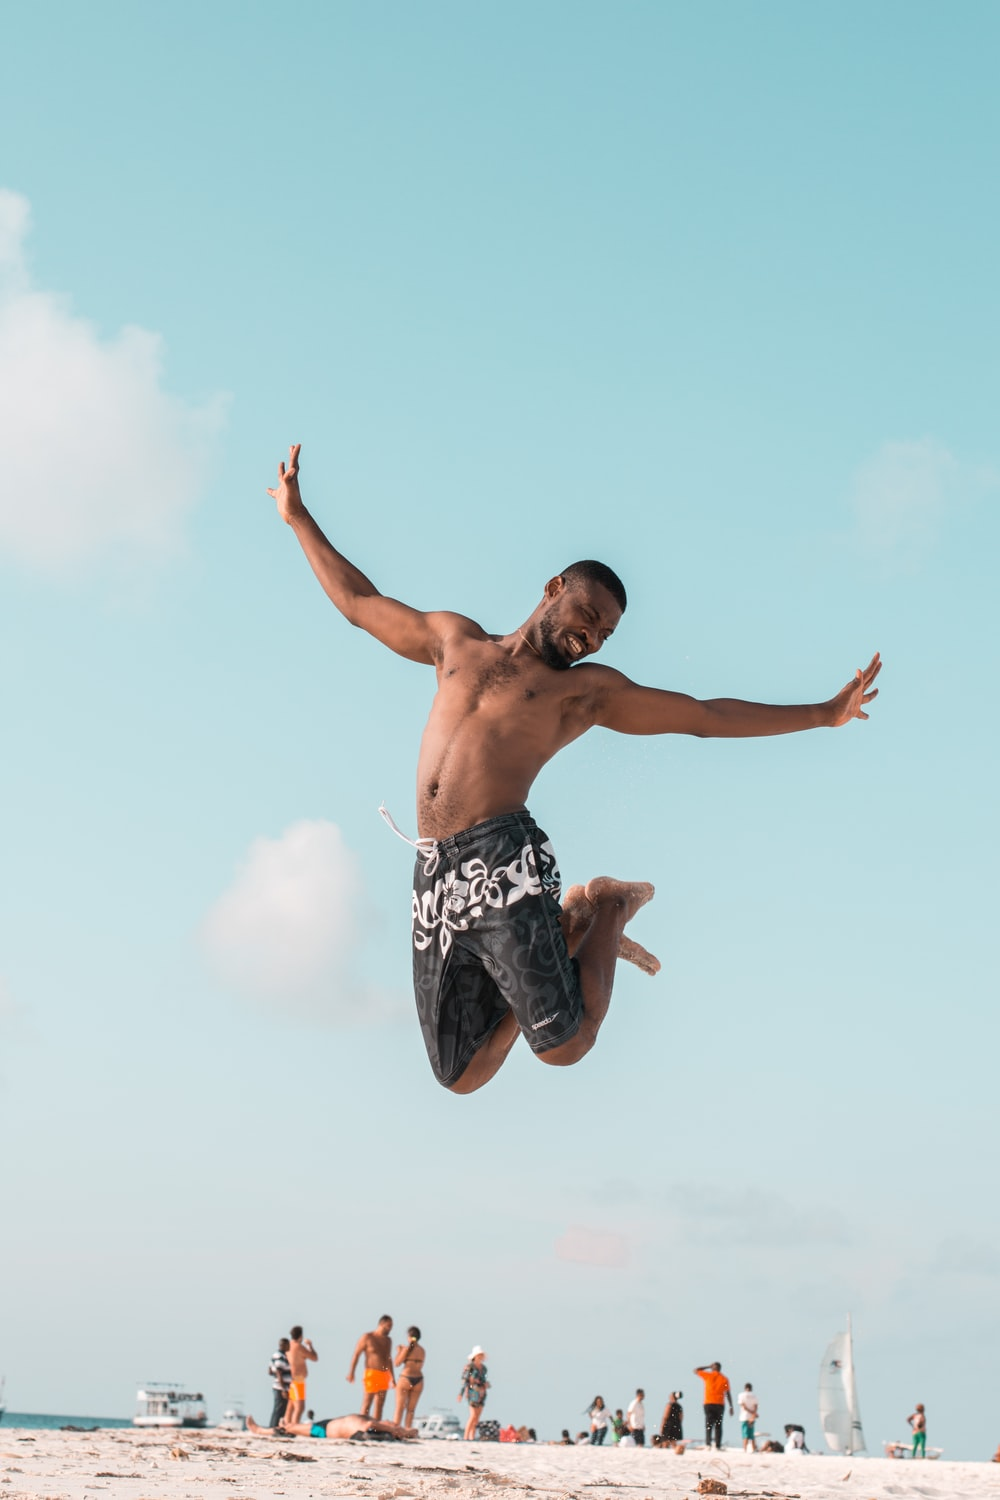 man jumping while spreading his arms and folding his legs at the beach during day